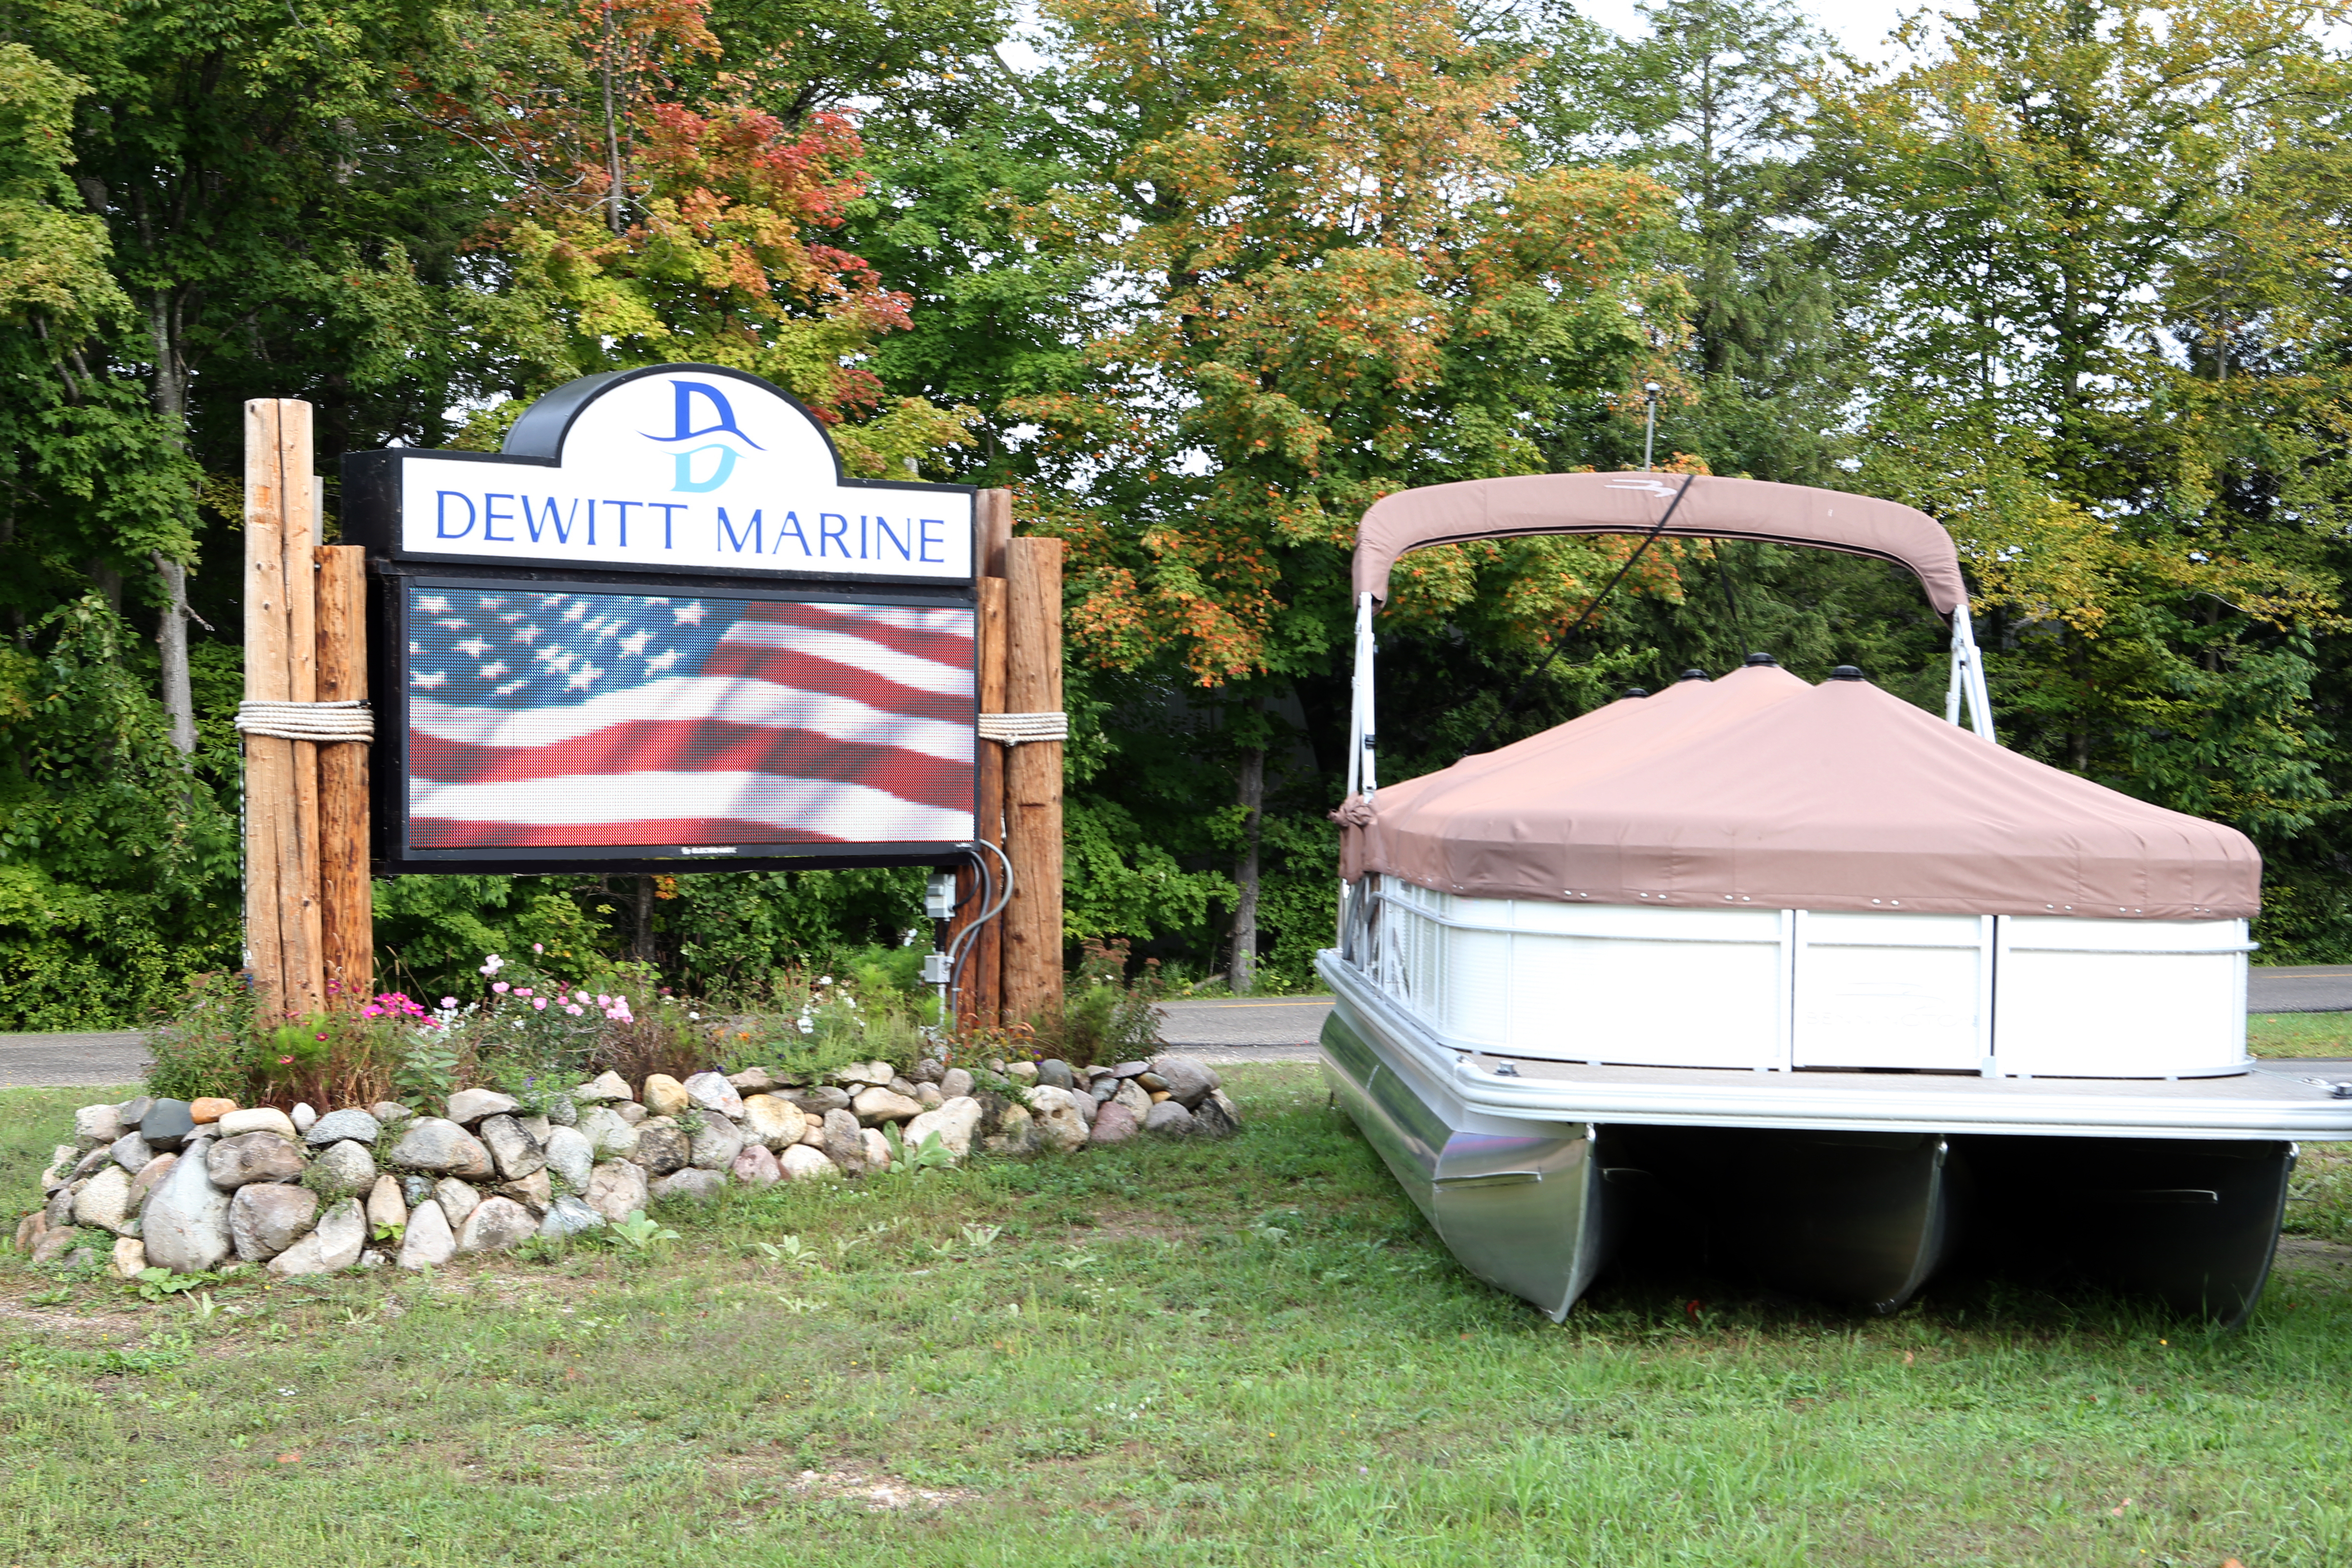 Dewitt Marine sees Increase in Sales with LED Sign Upgrade